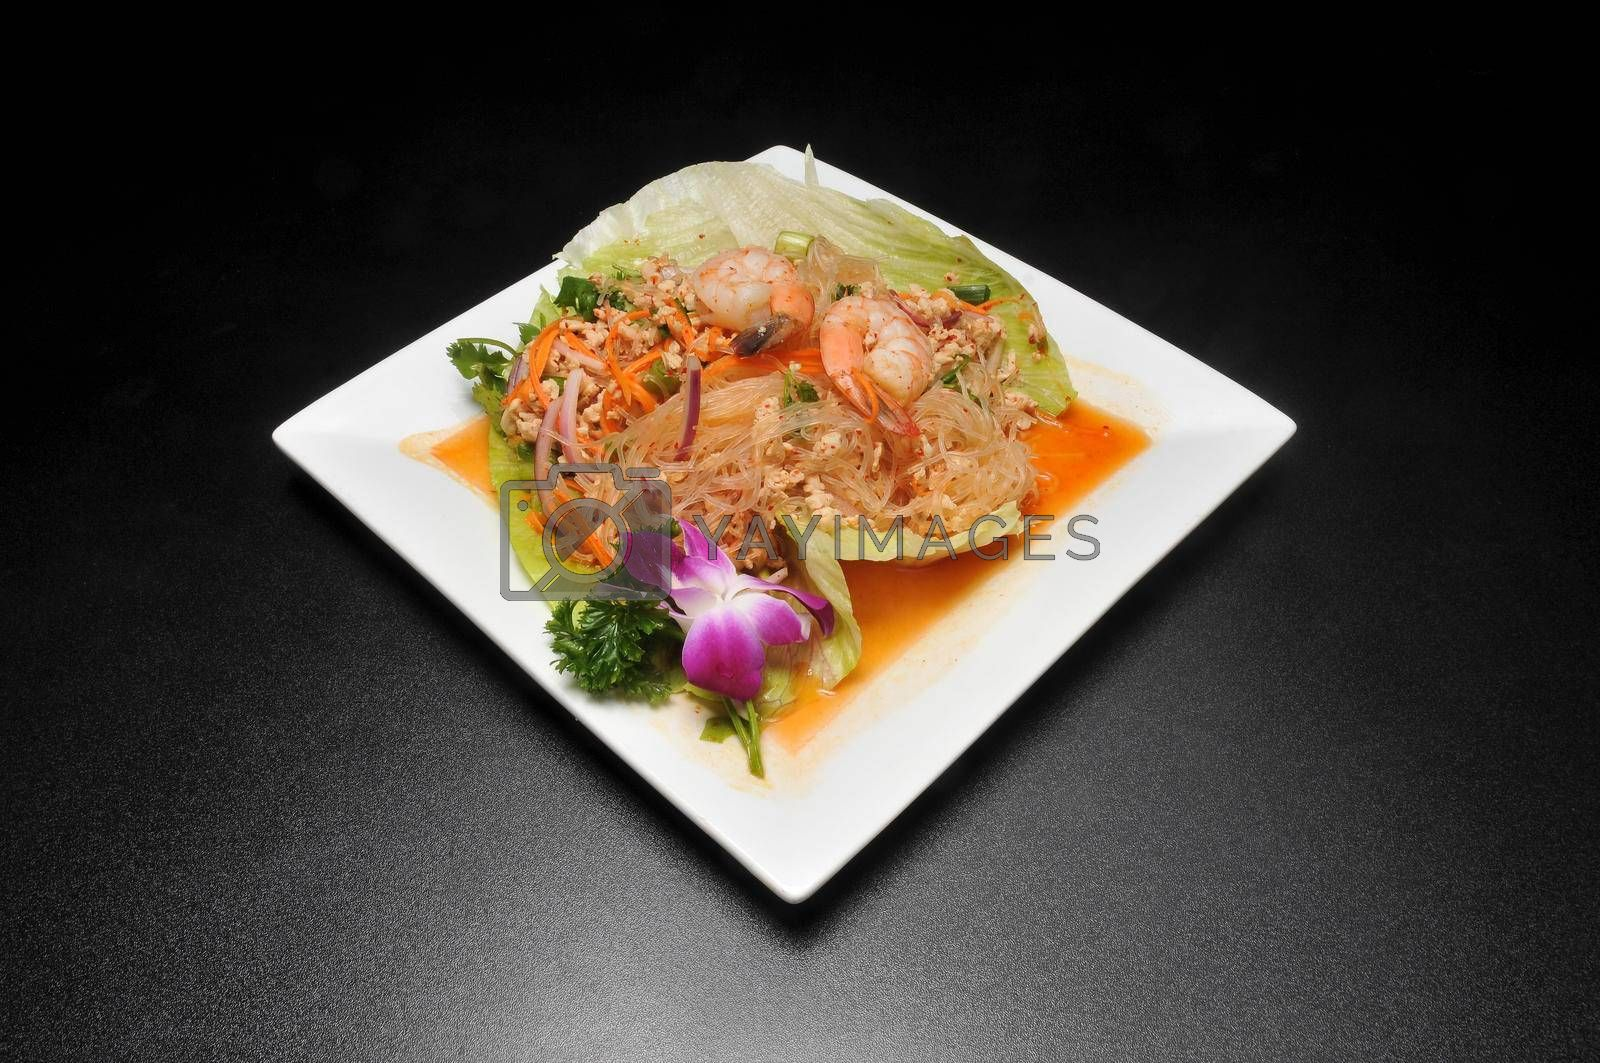 Traditional and authentic Chinese cuisine known as shrimp salad